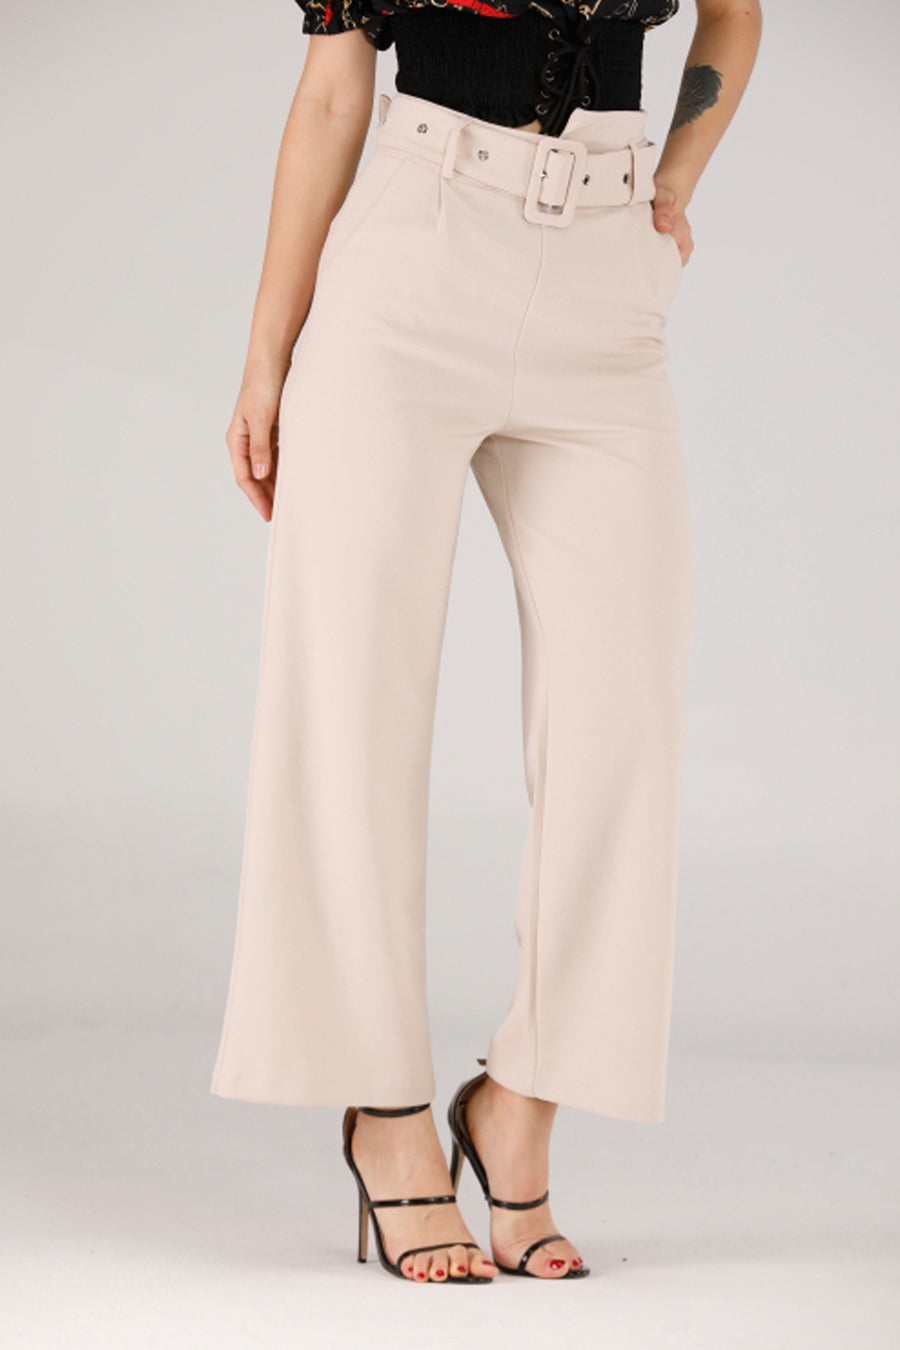 Mantra Pakistan BEIGE PANTS WITH BELTS | BOTTOMS